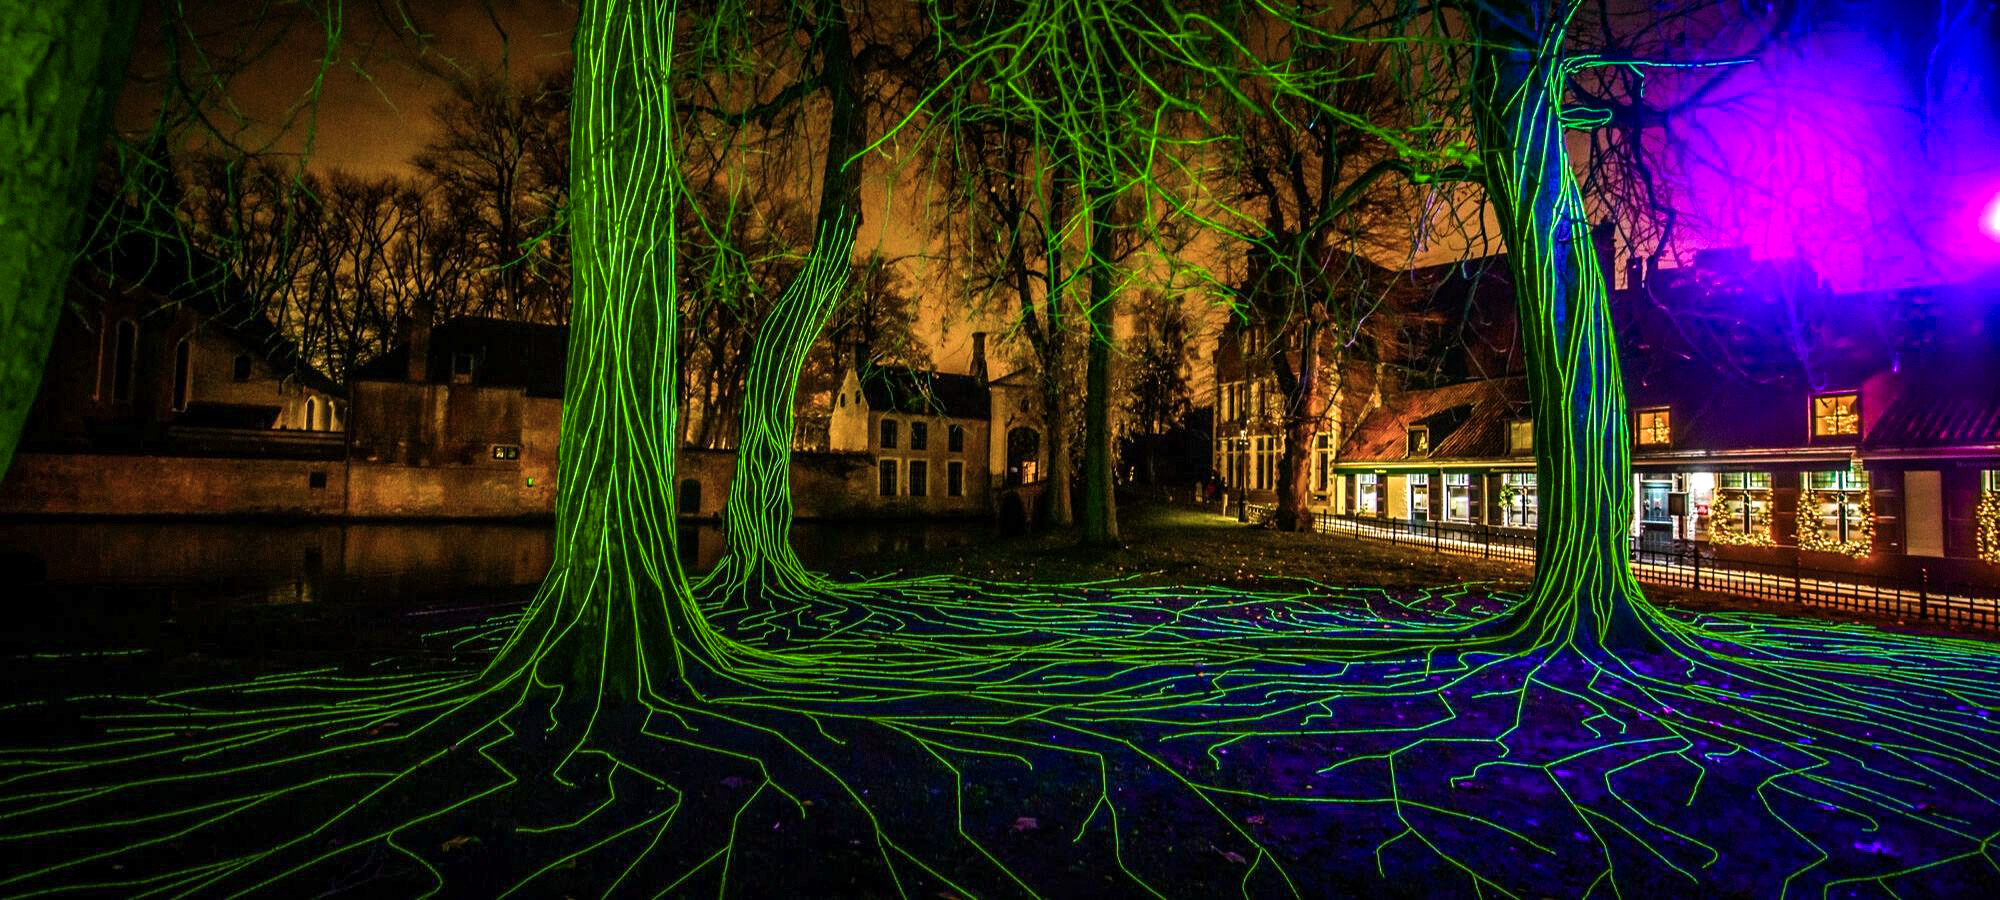 Trees in a park near Bruges city centre with vein-like green Christmas lights running up the bark, Bruges, Belgium